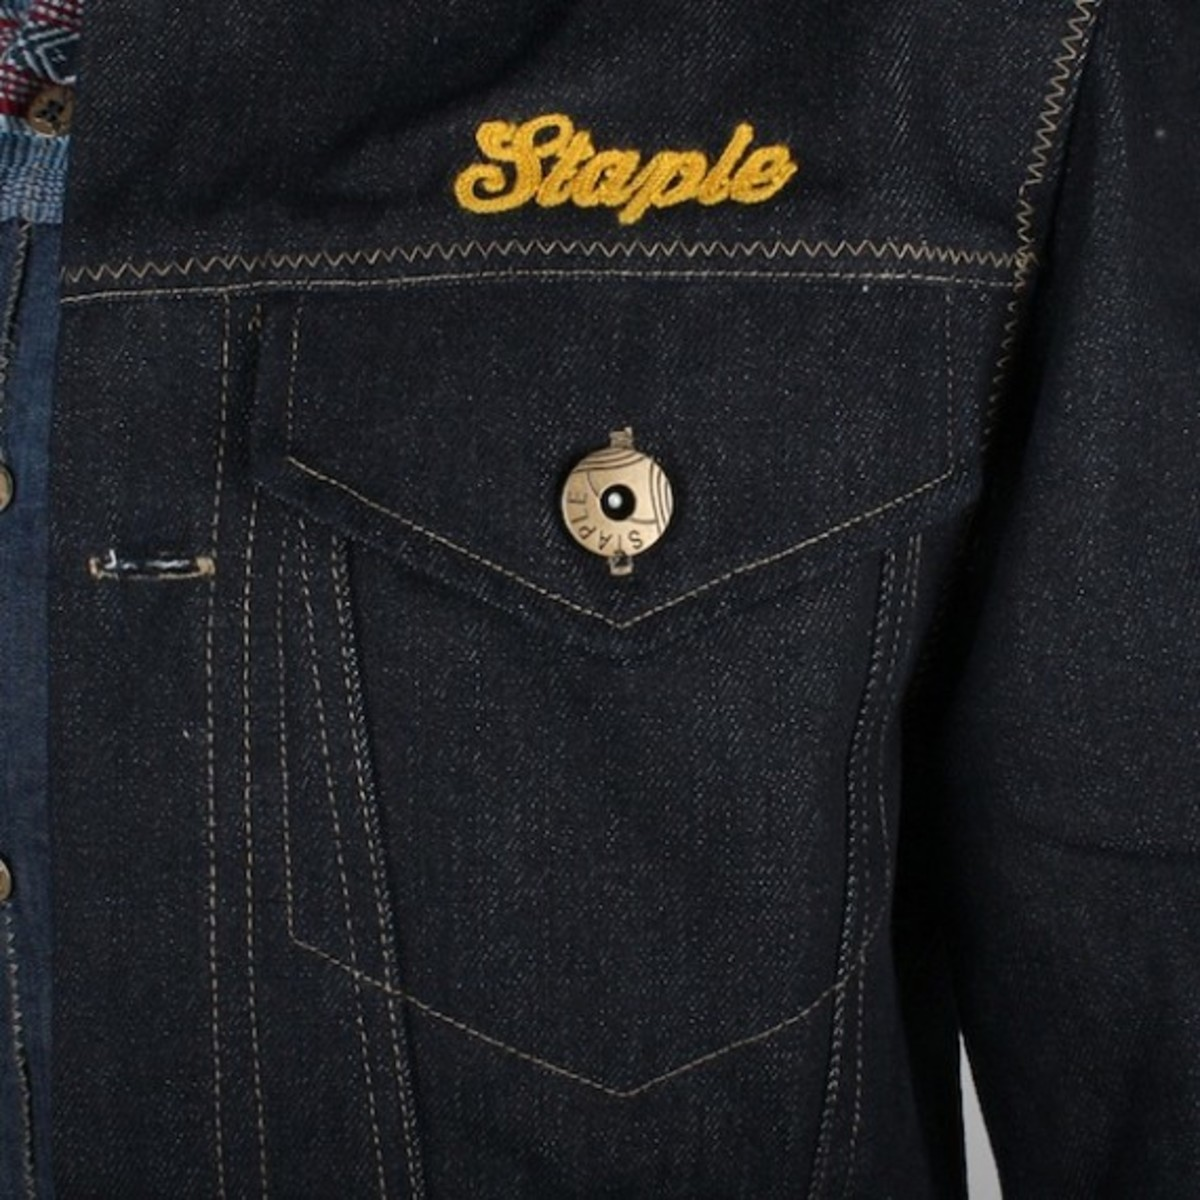 staple-design-fall-2012-collection-delivery-2-10